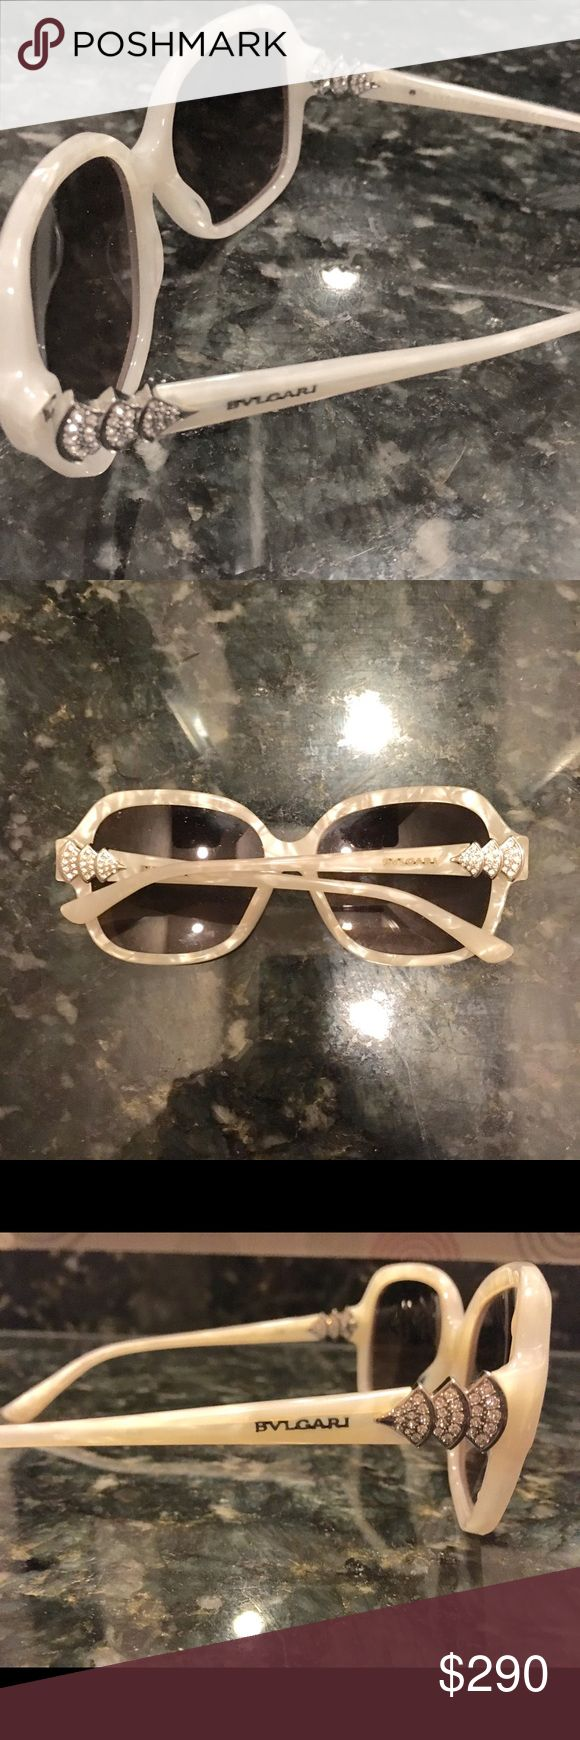 Bulgari sunglasses Pics originally 490 from sunglasses hut Bulgari Accessories Glasses